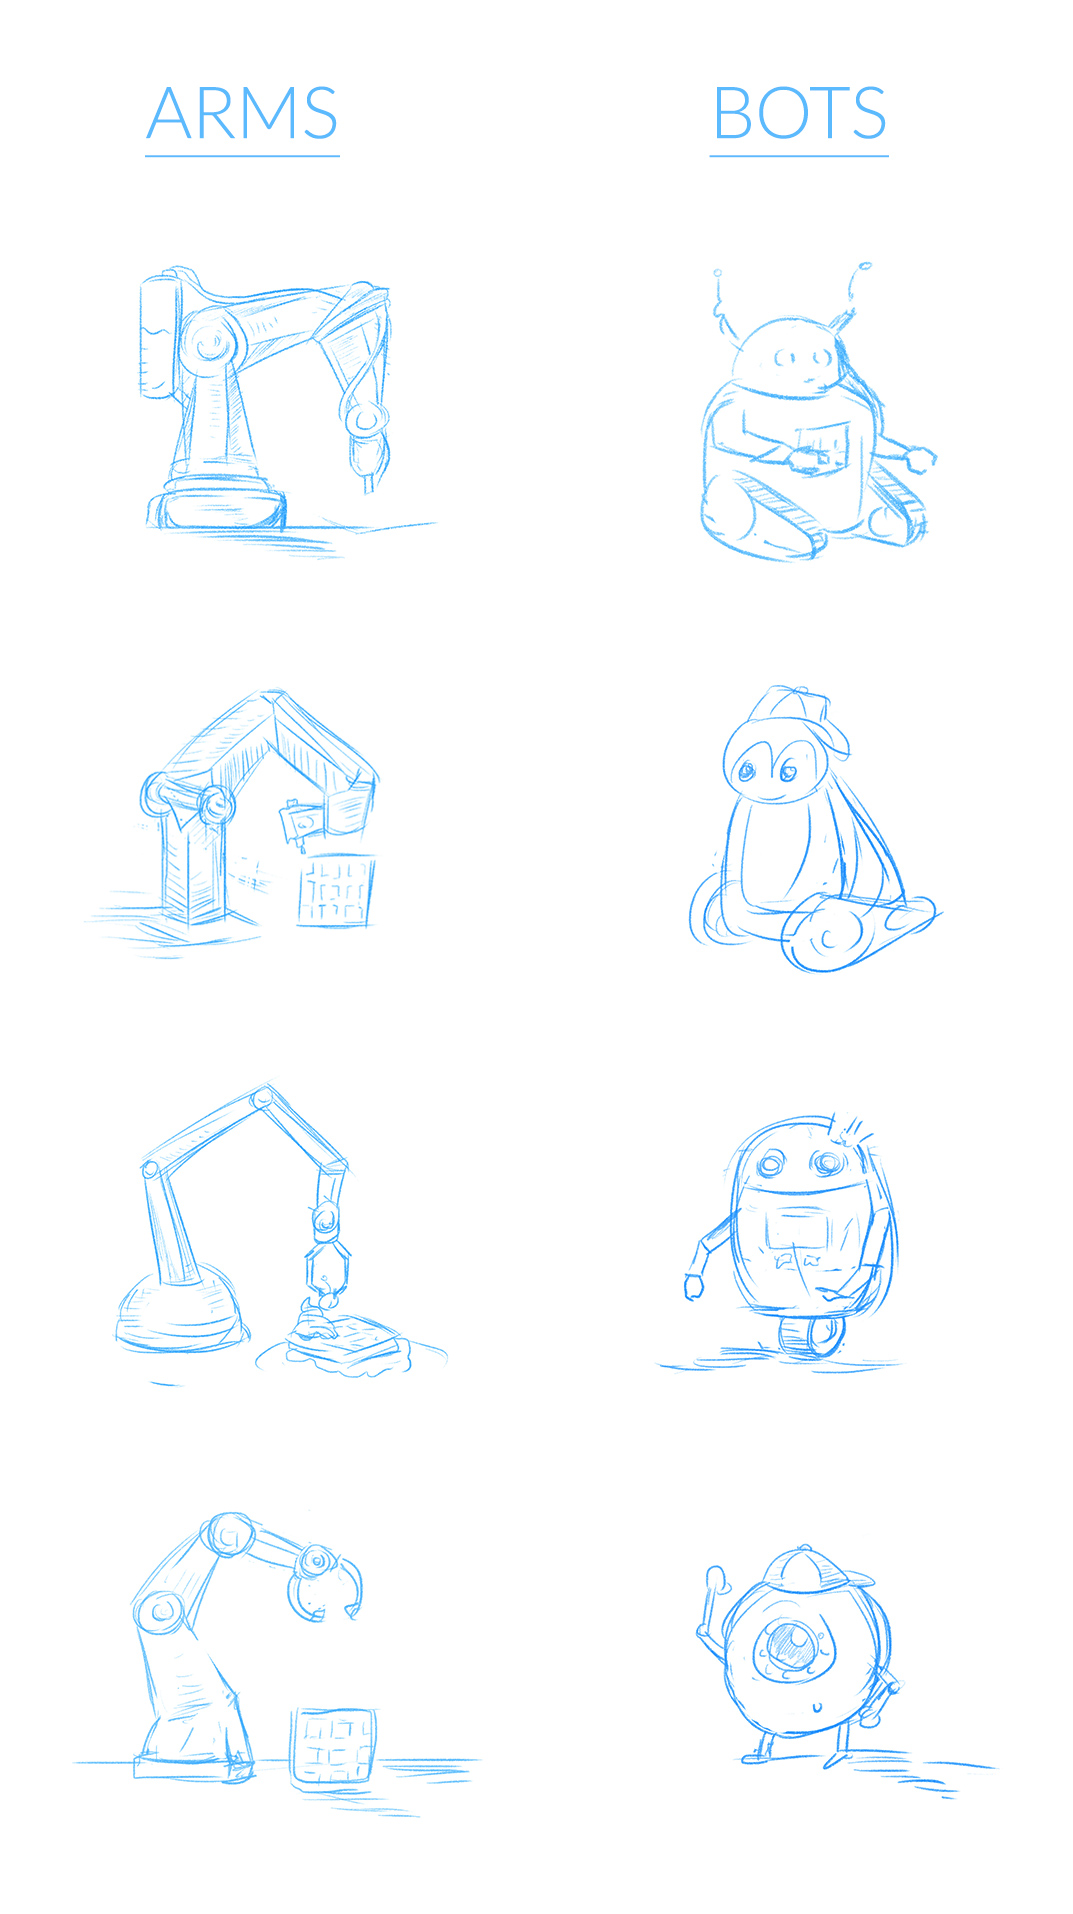 WaffleBot robots and arms